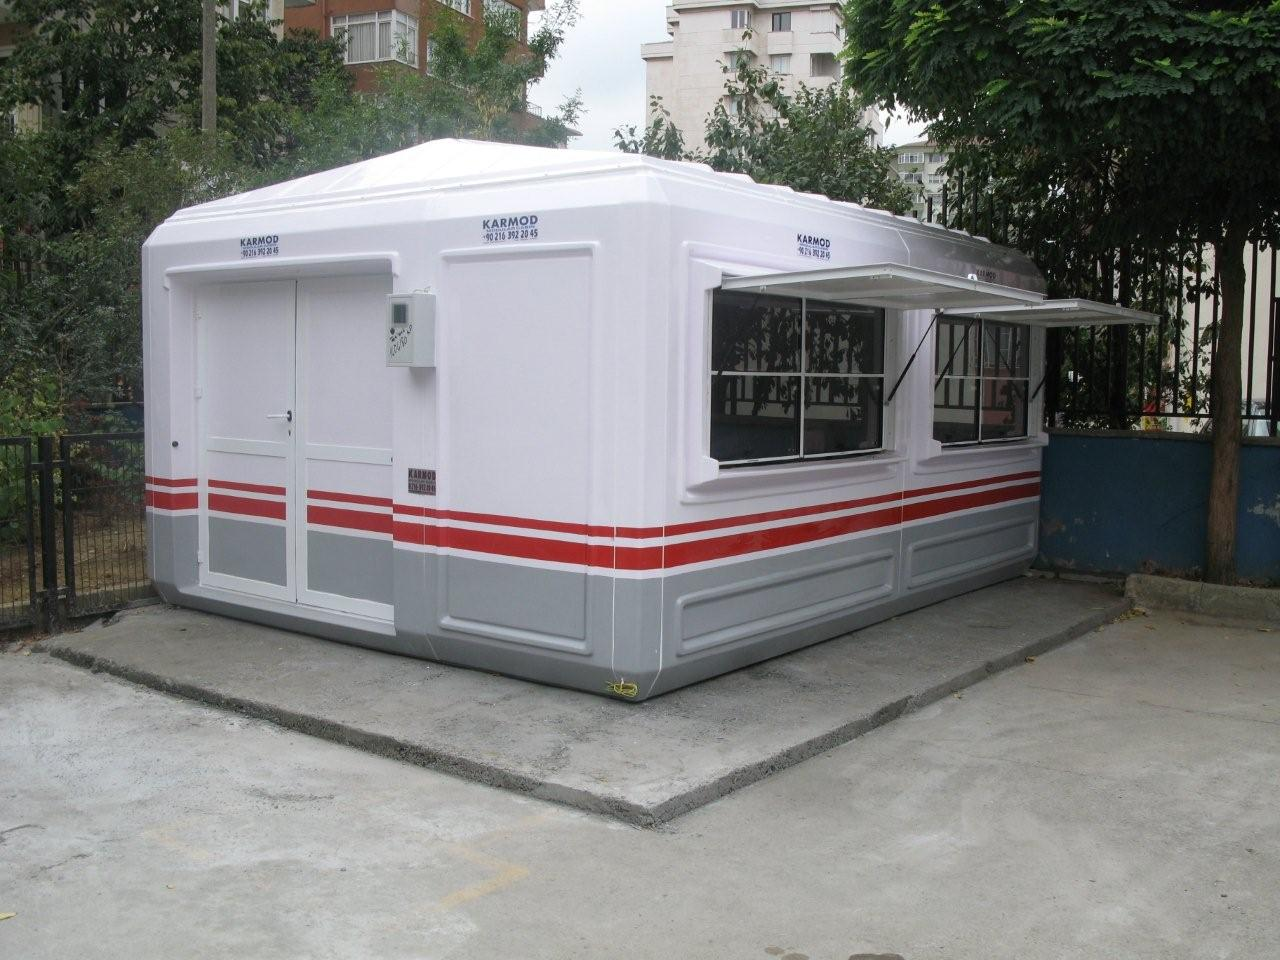 Container homes prefab container city homes for sale karmod - Container home prefab ...